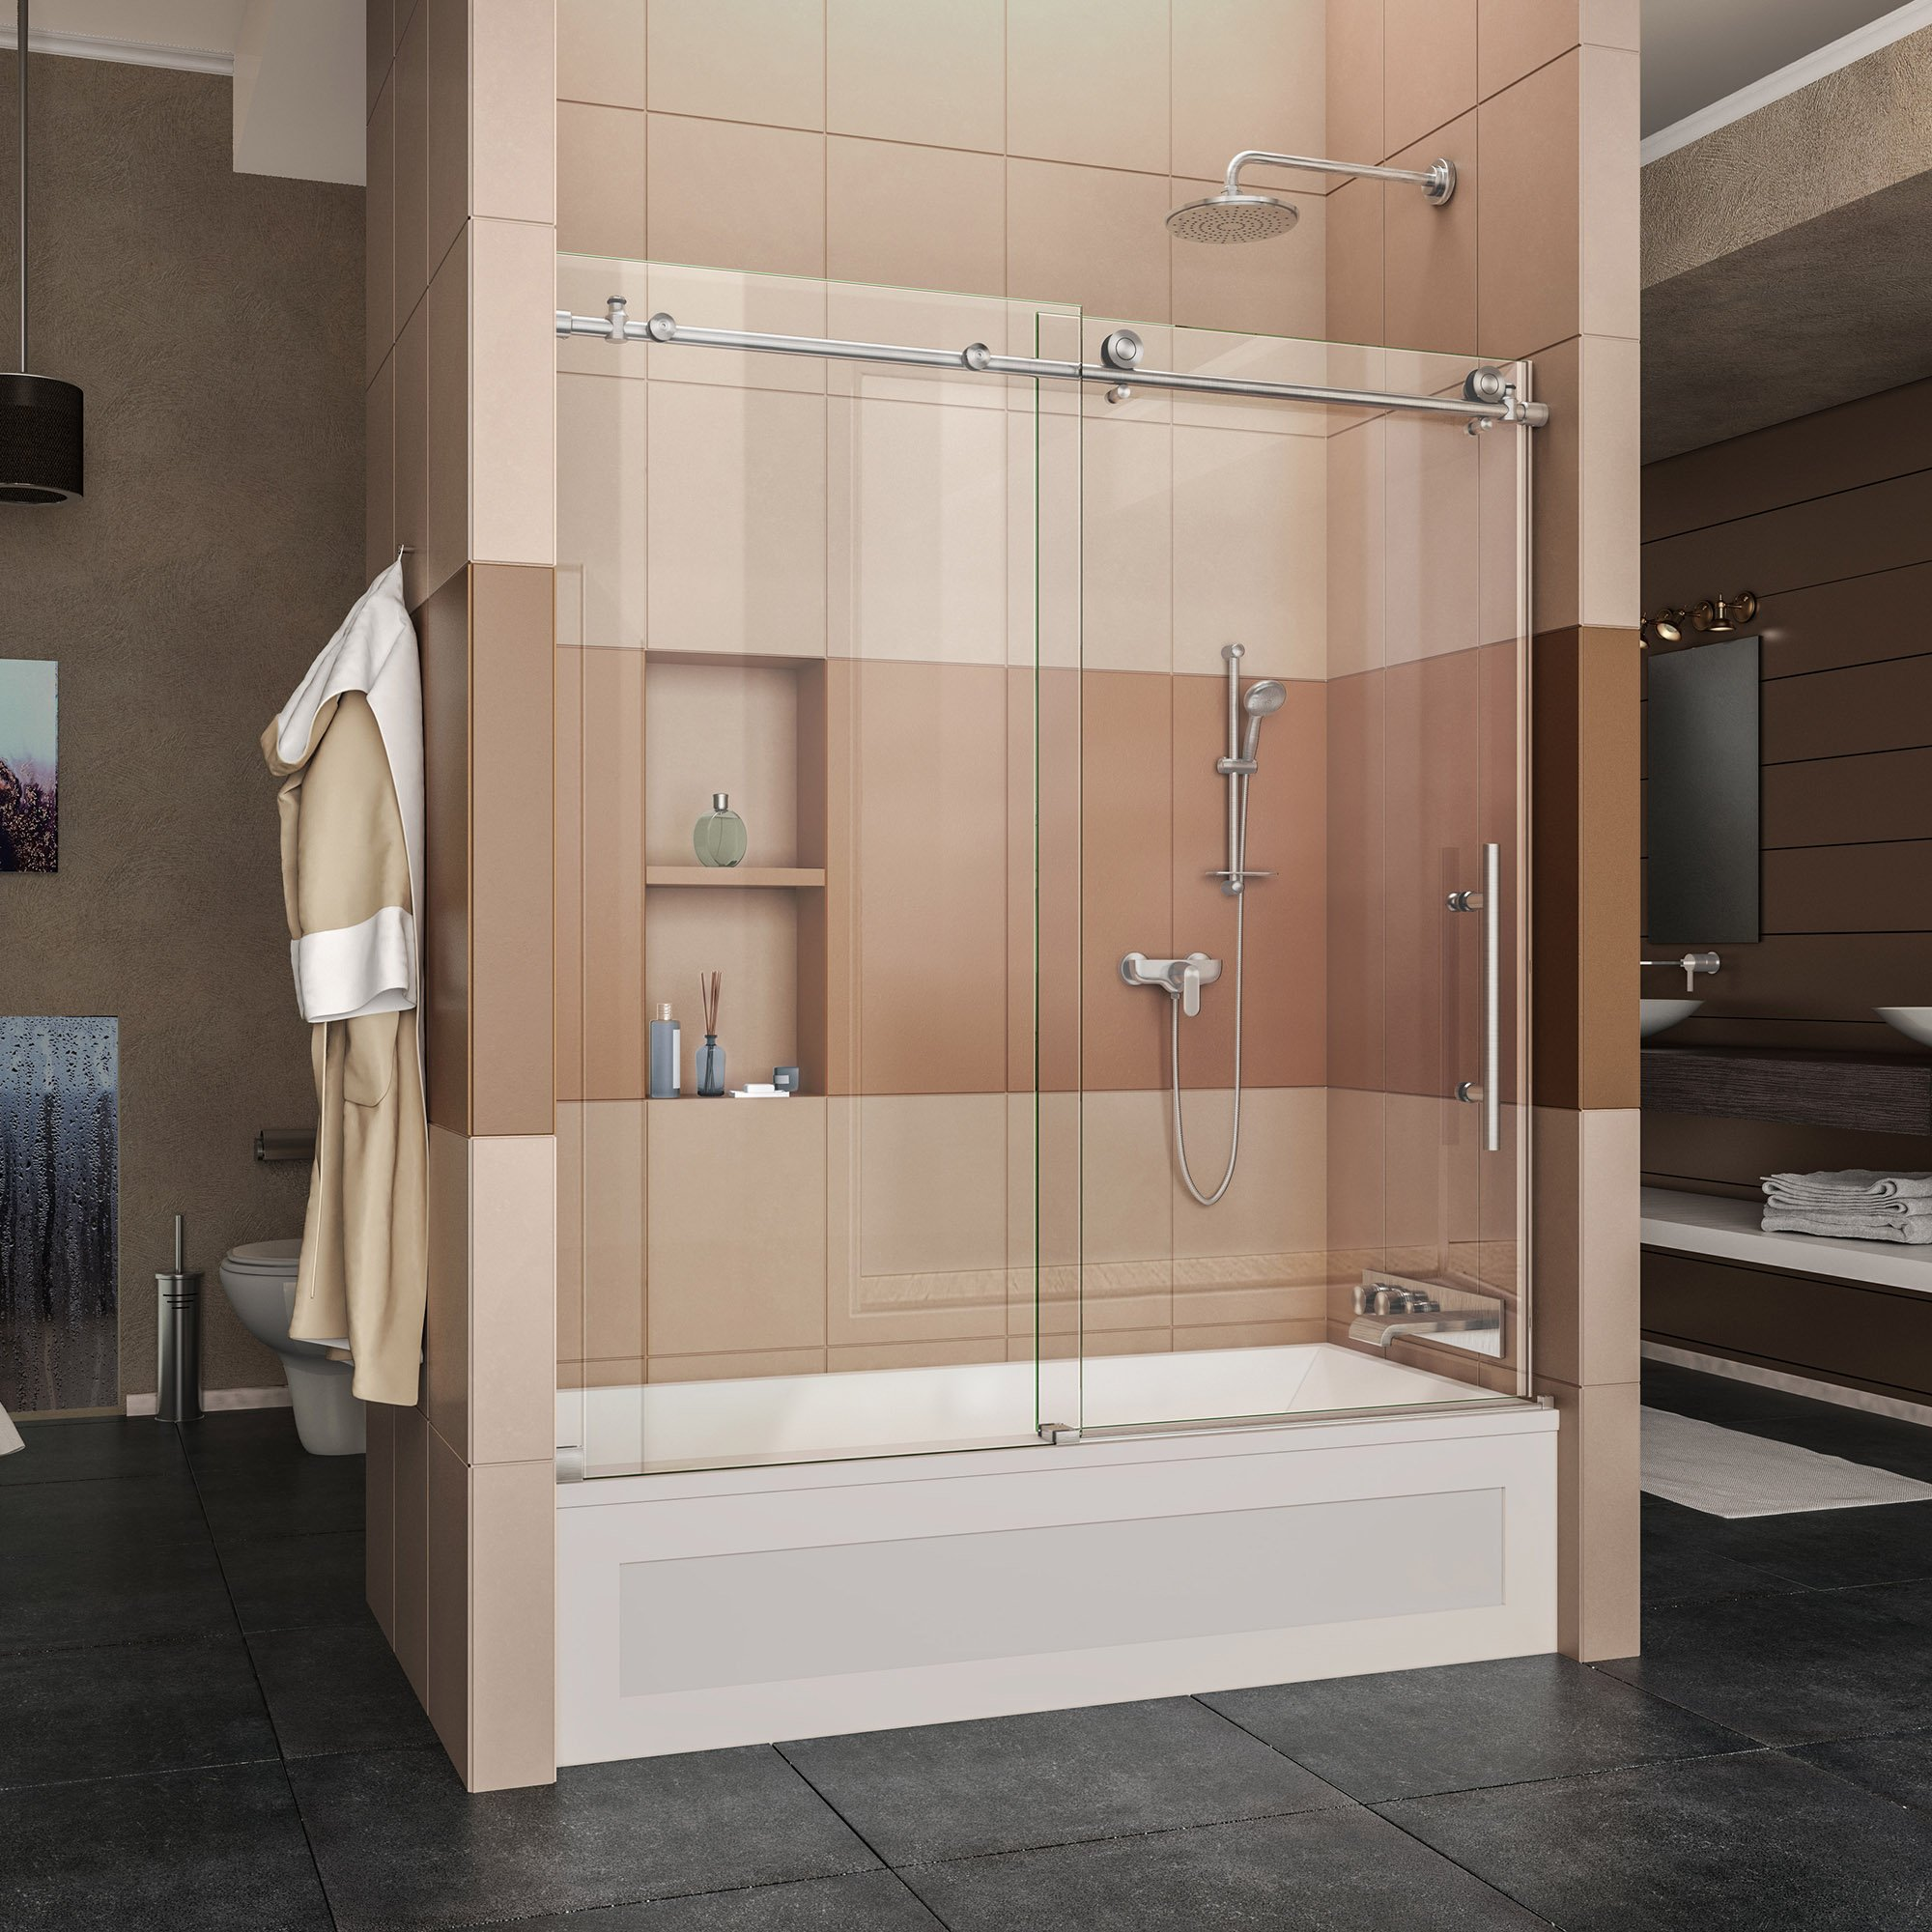 DreamLine Enigma-X 56-59 in. Width, Frameless Sliding Tub Door, 3/8'' Glass, Brushed Stainless Steel Finish